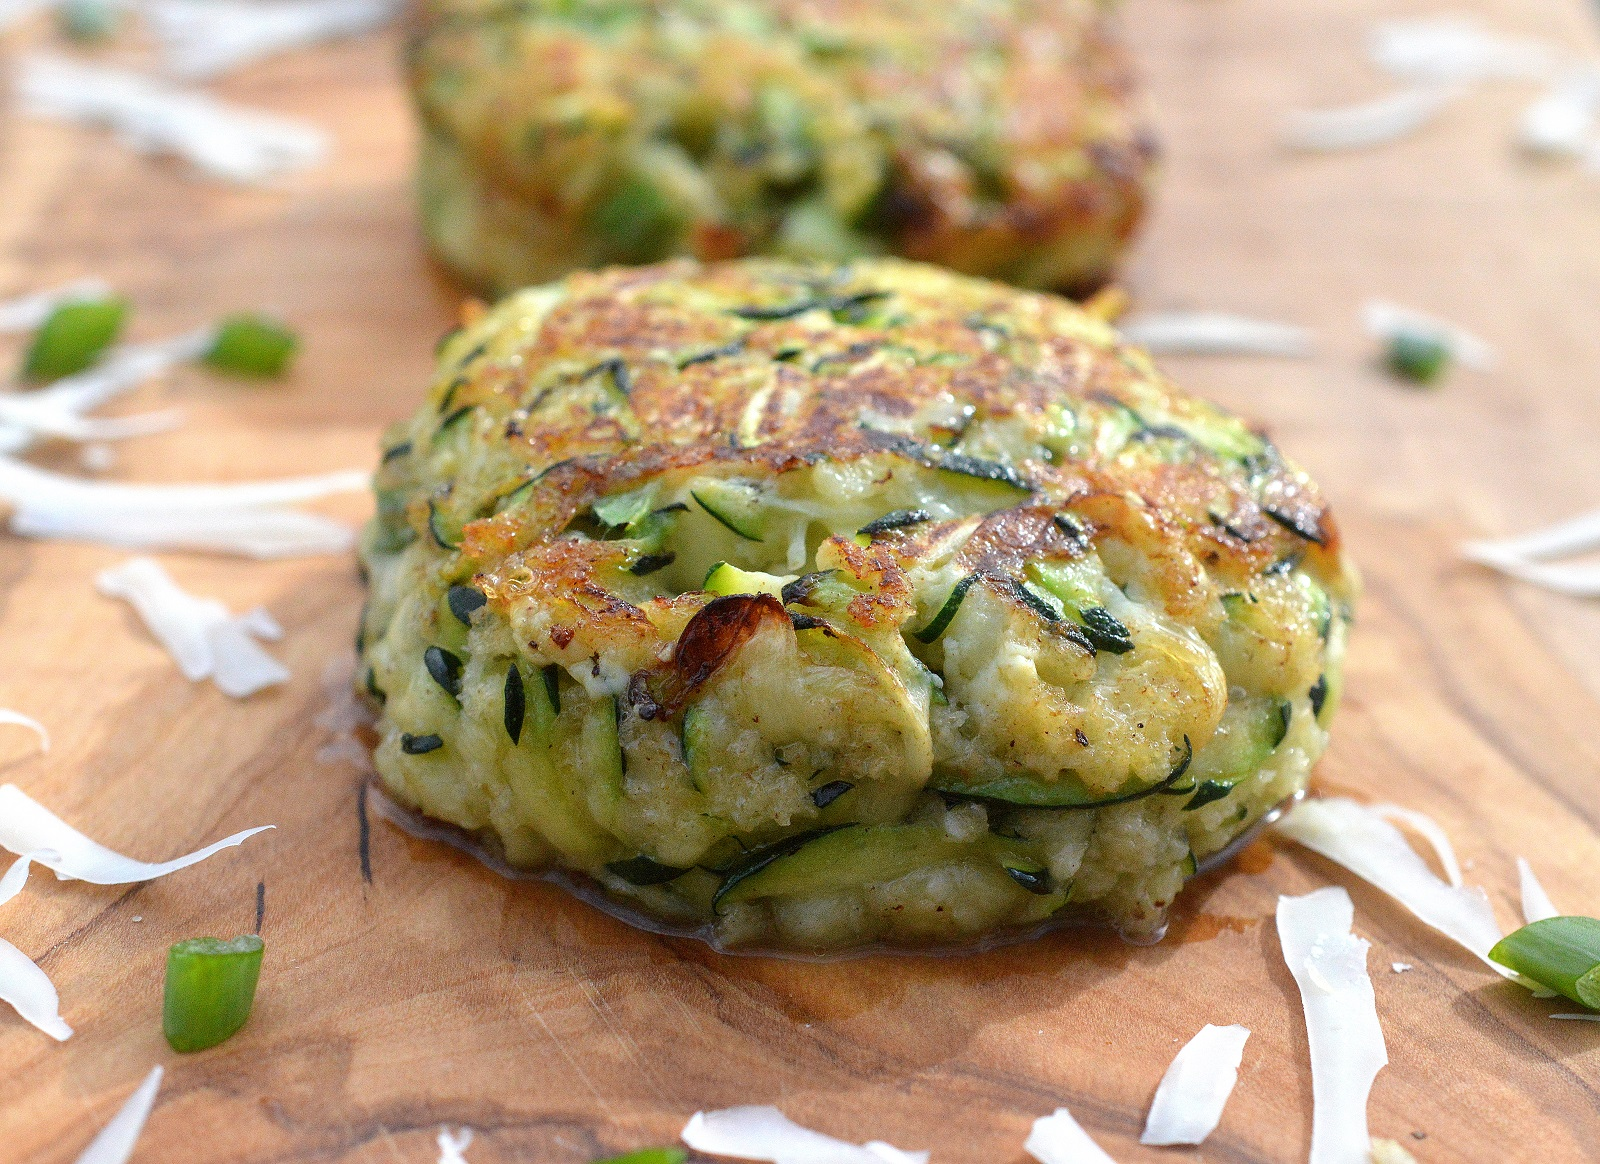 These Cheesy Zucchini Cakes are different and delicious! Plus they are low carb and keto friendly!